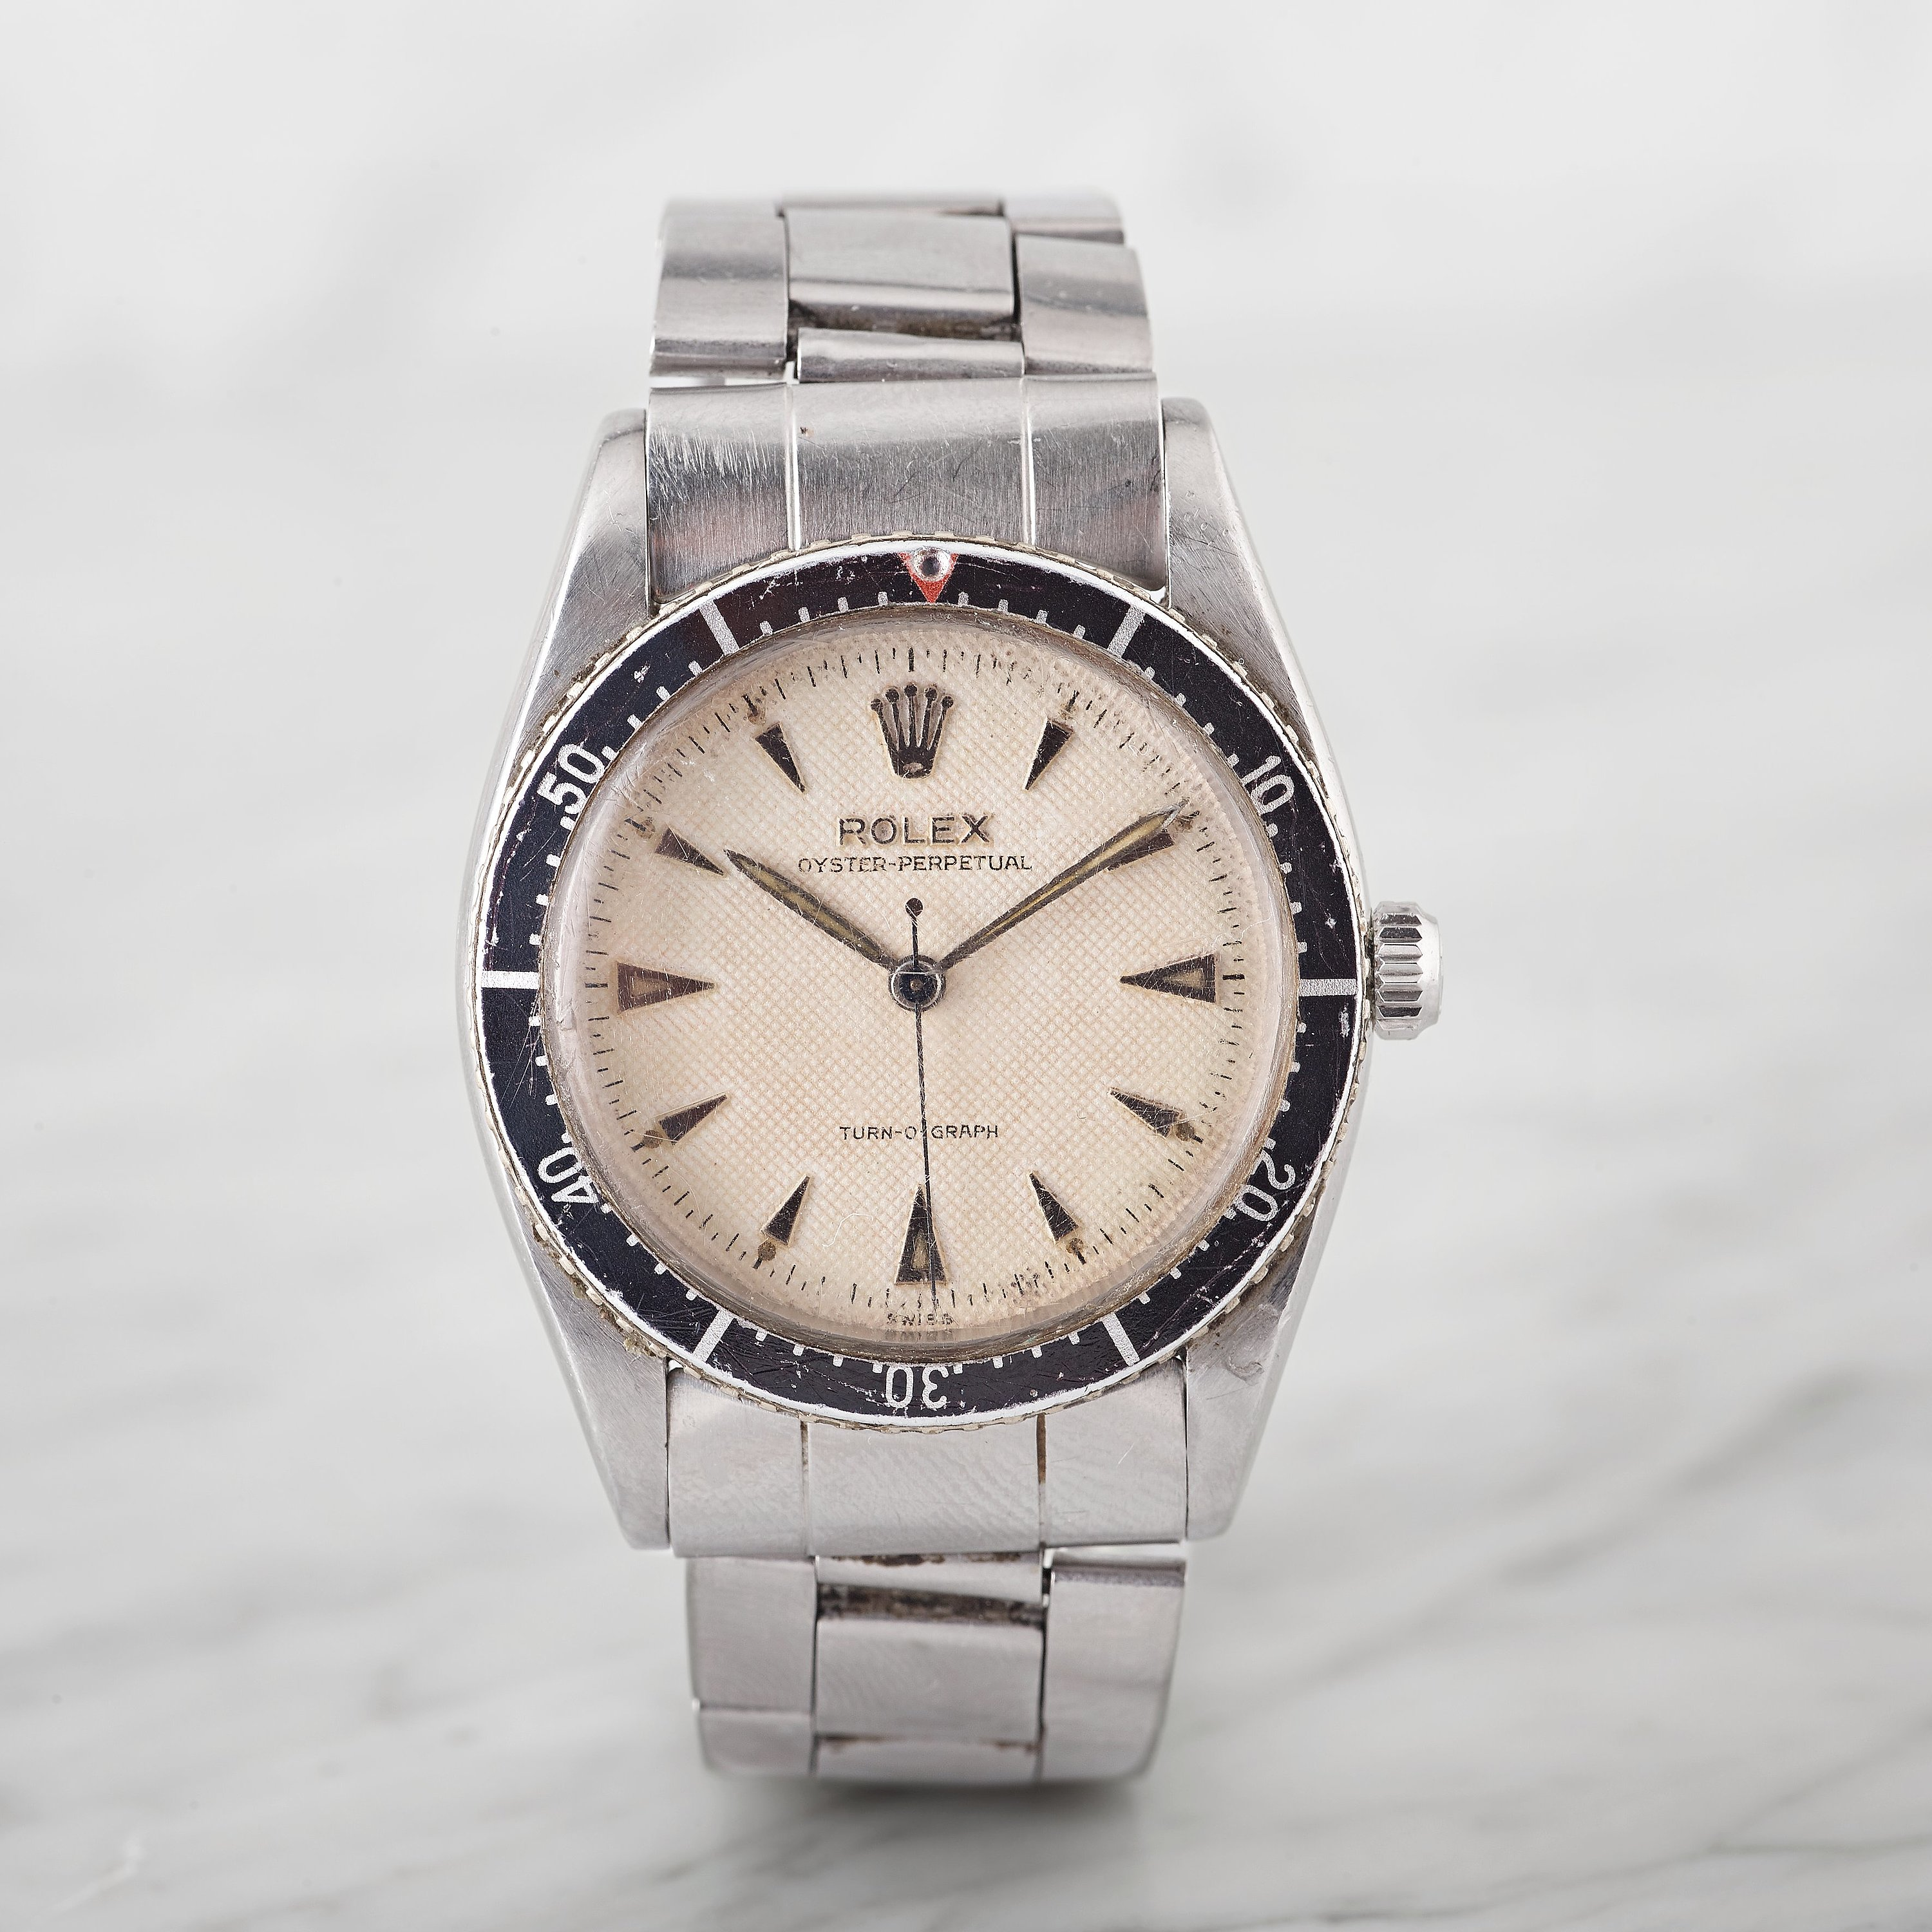 Rolex, Turn-O-Graph, Bukowskis Important Timepieces